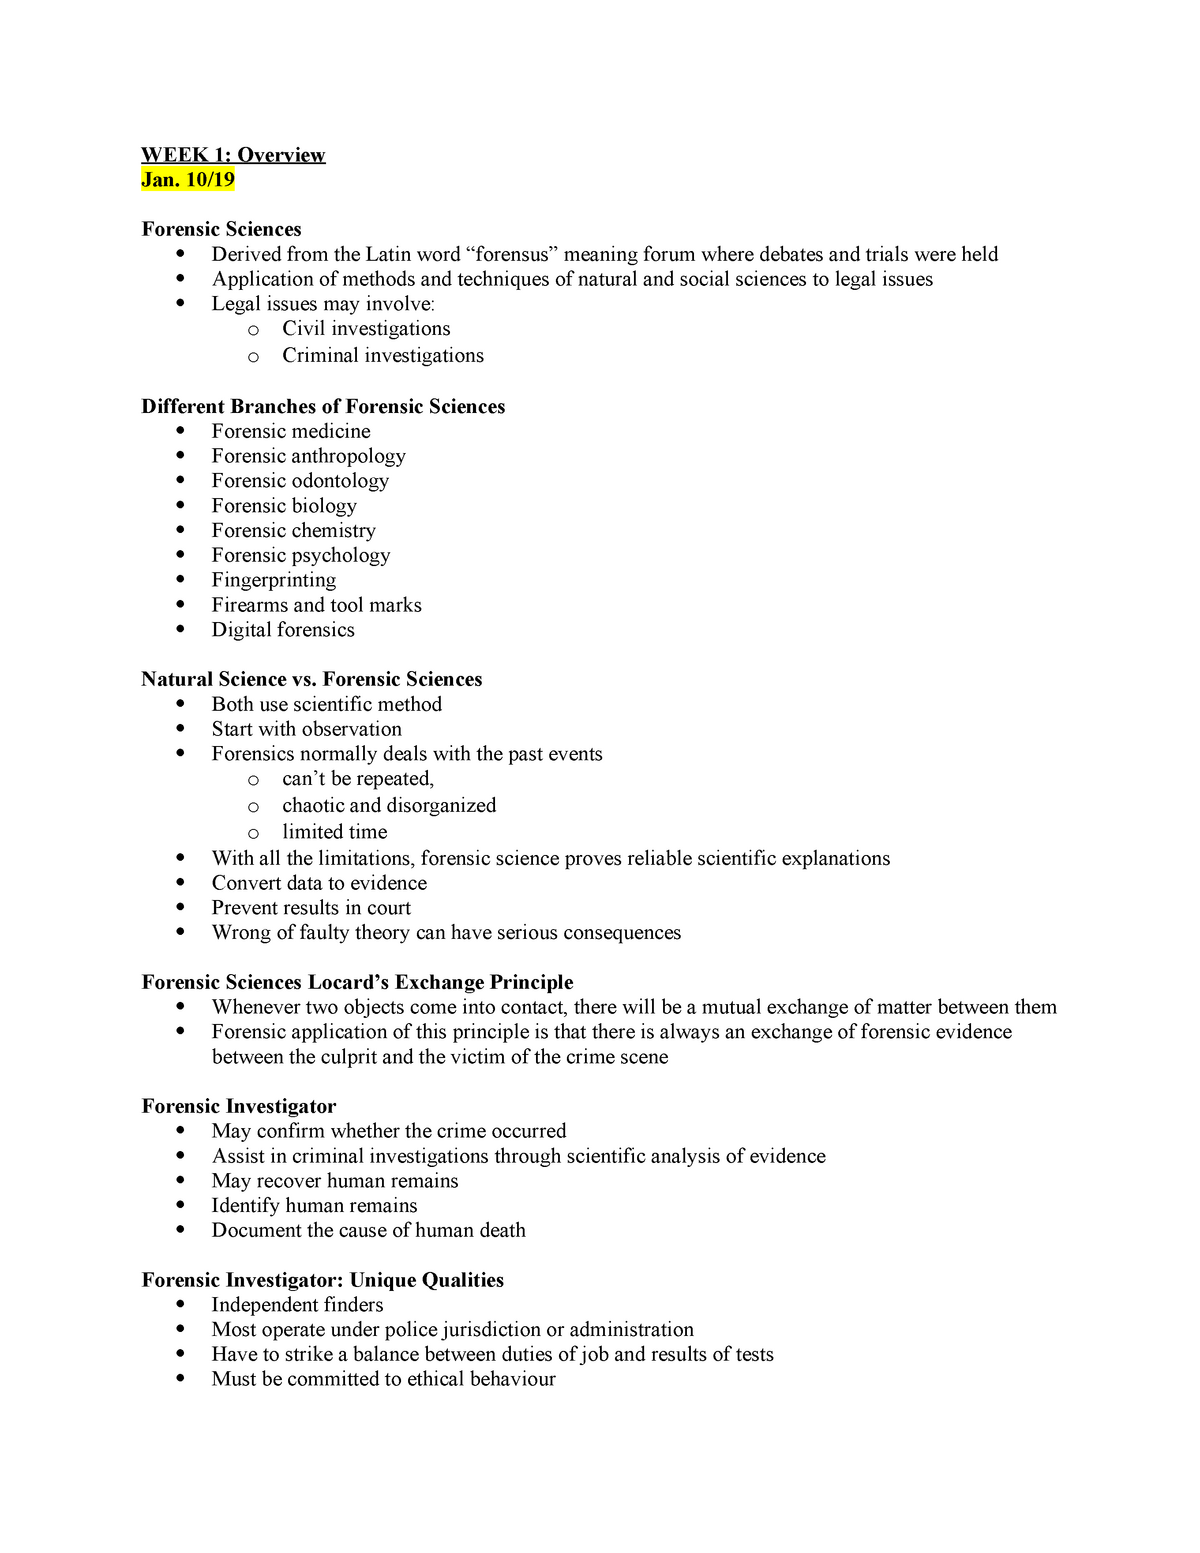 Week 1 Overview Of Forensic Sciences Intro To Fs Notes Studocu